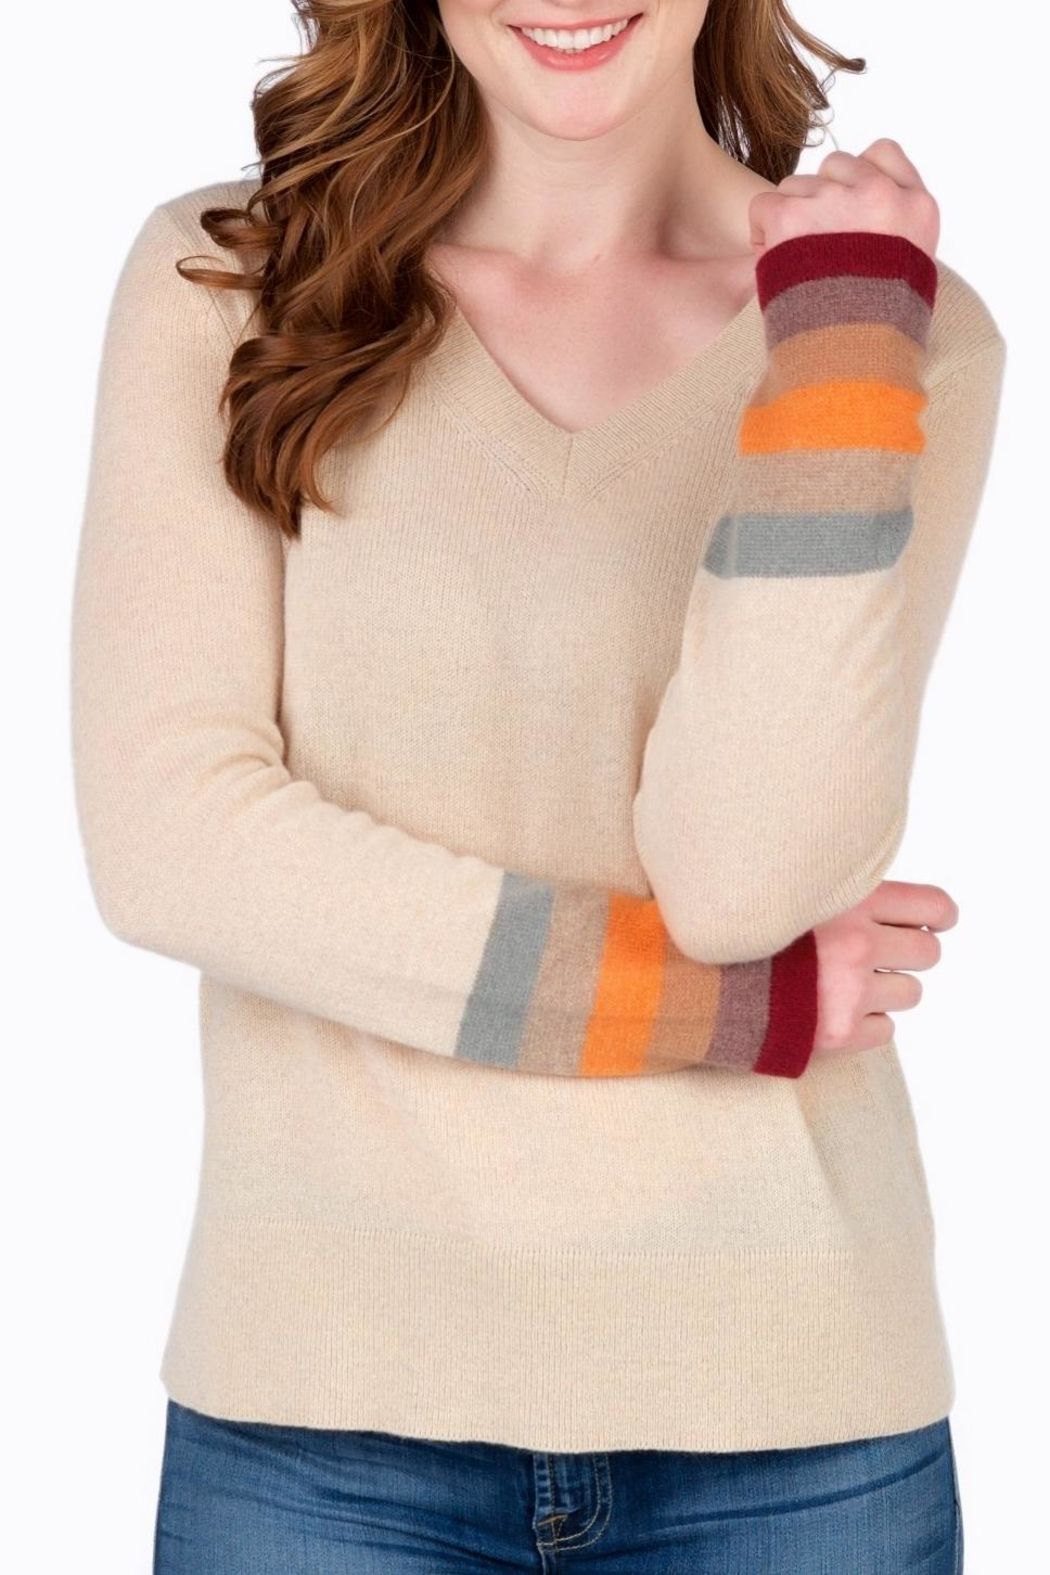 Claudia nichole Autumn Stripe Sweater - Main Image